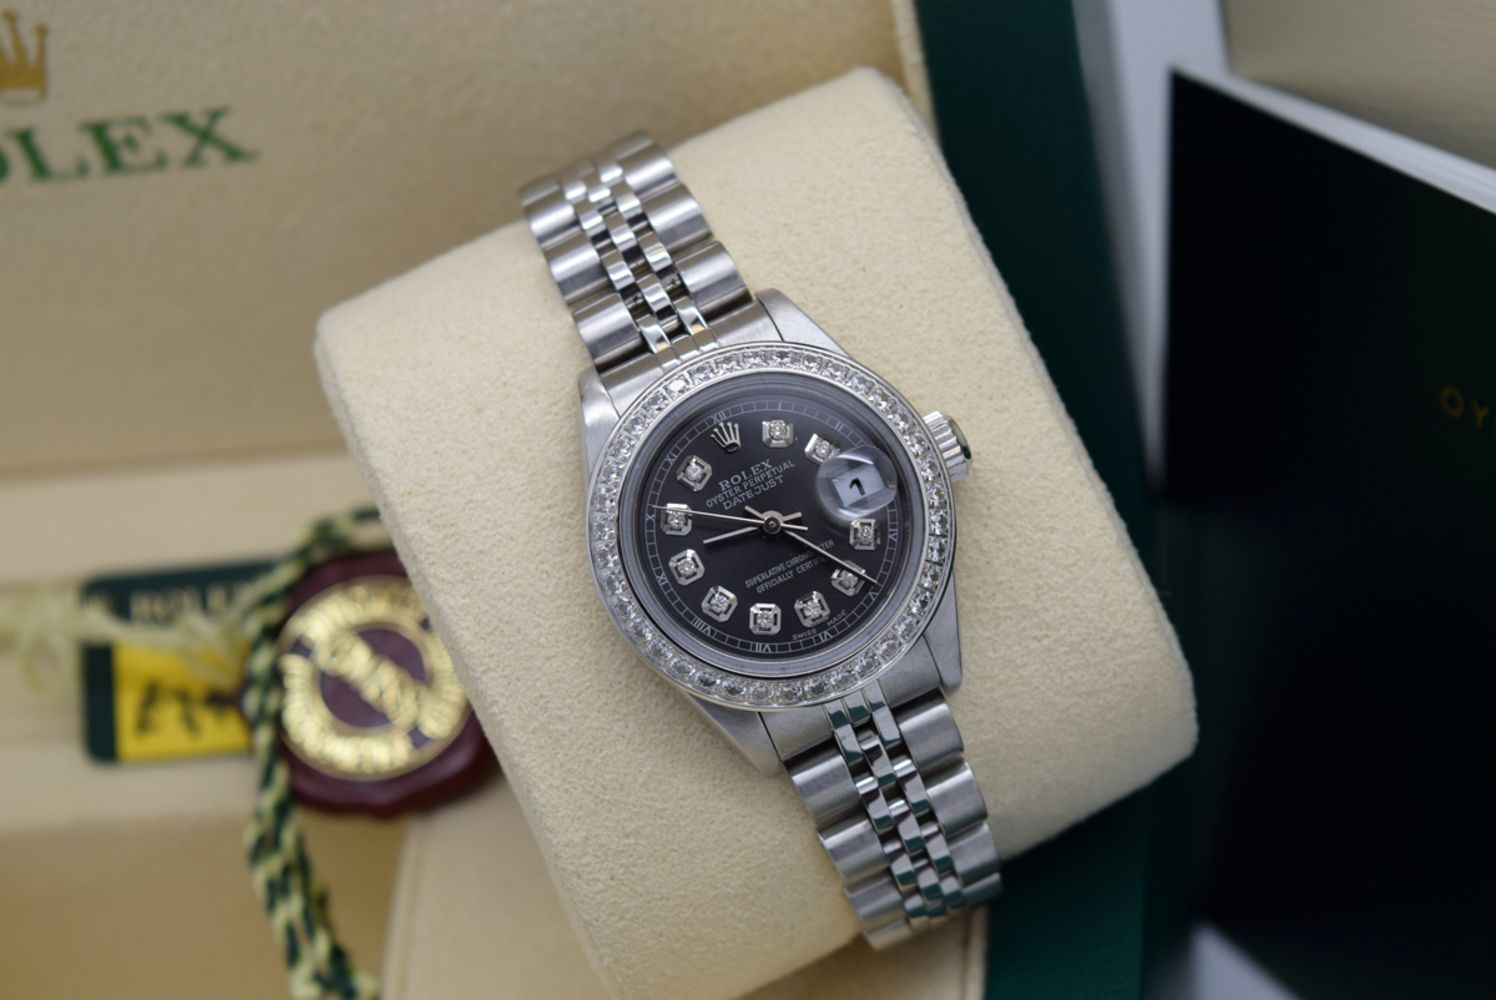 7 DAY SPEEDY AUCTION OF WATCHES, JEWELLERY, SHAMBALLA SUNGLASSES, ANTIQUES & COLLECTABLES  ETC